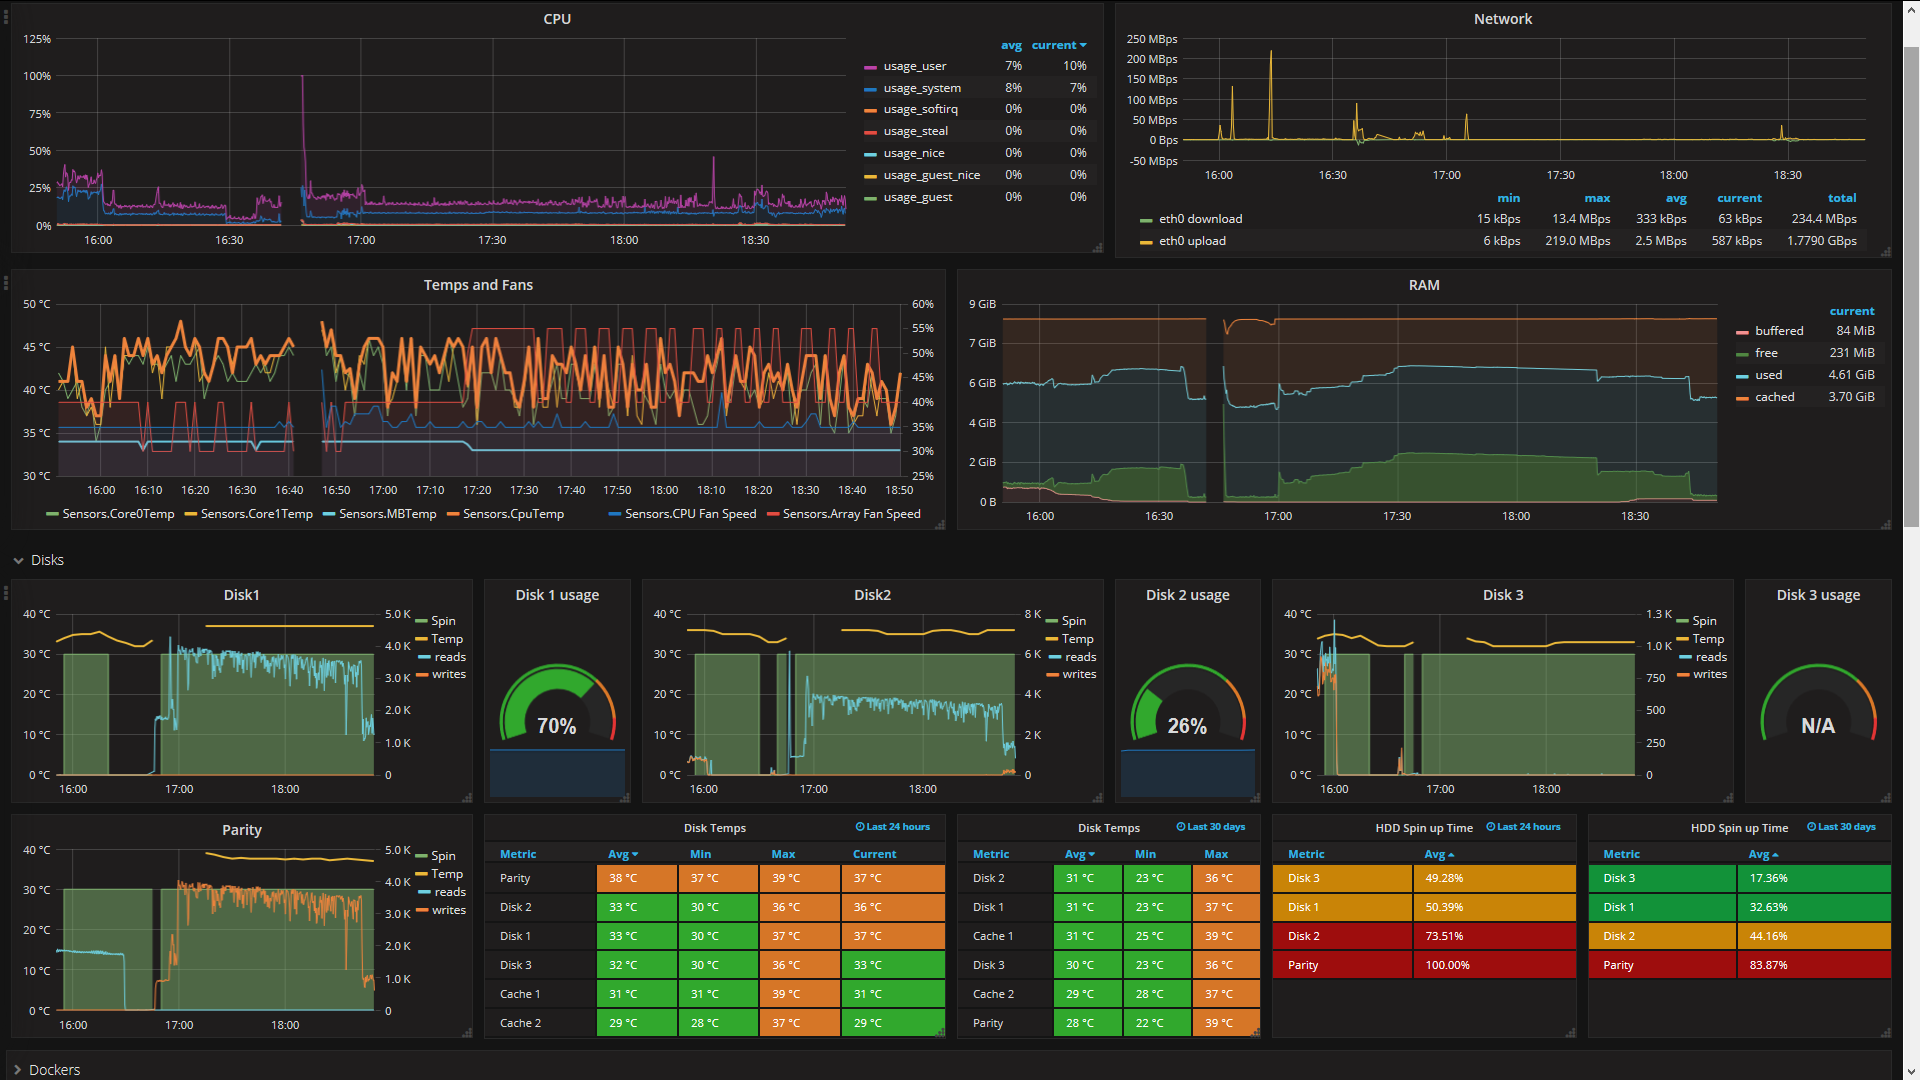 Scripts for Server Monitoring using Influx DB and Grafana without